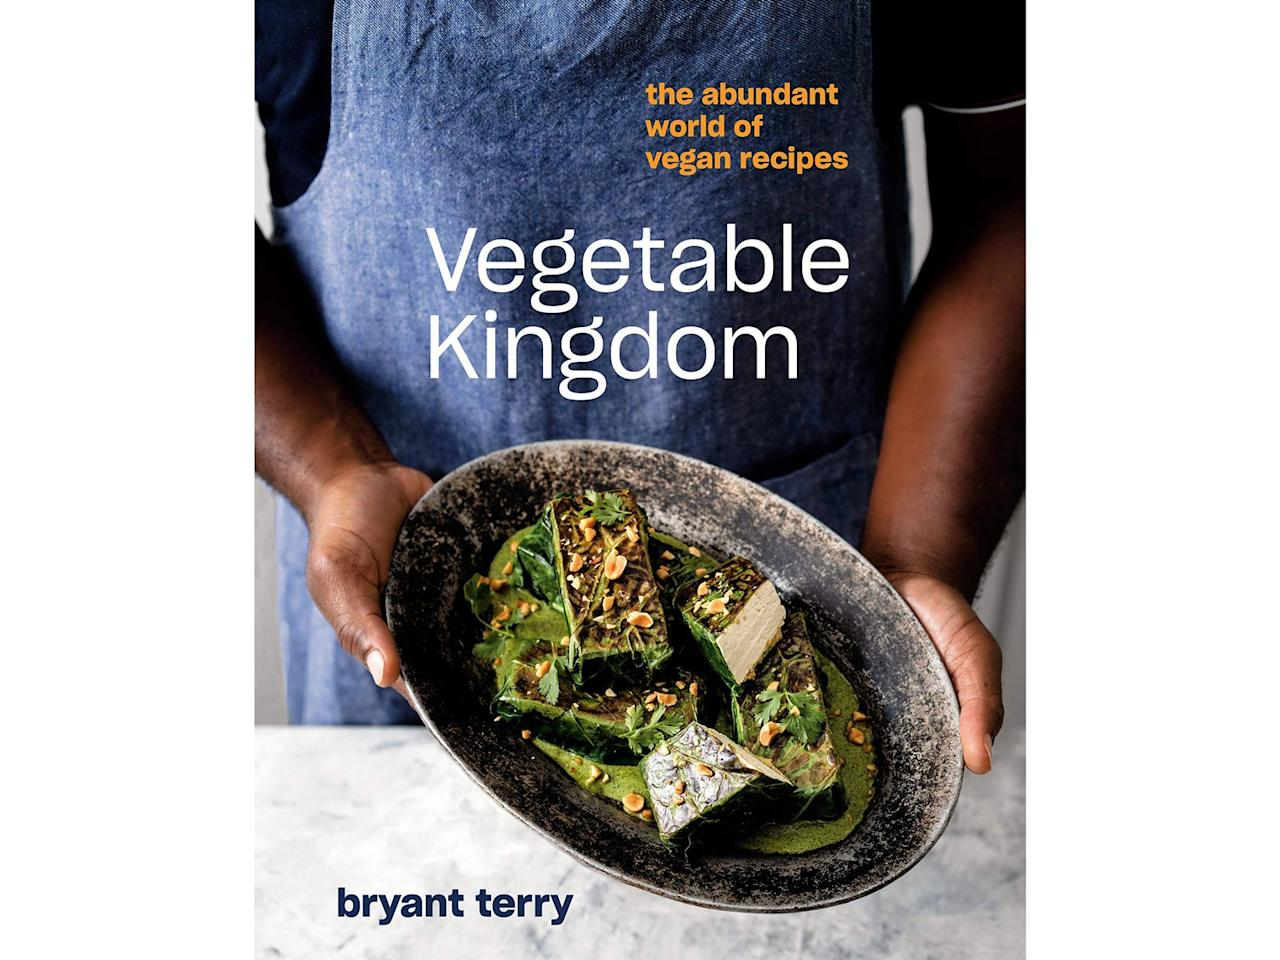 """<p>Popular vegetables, grains, and legumes take center stage in this brand new cookbook from food justice activist Bryant Terry. The book is organized according to ingredient, so you can focus on the central veggies you have on-hand and whatever is in season. Make hearty vegan dishes like barbecued carrots with slow-cooked white beans or millet roux mushroom gumbo—no meat substitutes required.</p> <p><strong><em>Vegetable Kingdom: The Abundant World of Vegan Recipes</em> by Bryant Terry (2020), $30 at <a href=""""https://www.amazon.com/gp/product/0399581049/ref=as_li_ss_tl?ie=UTF8&linkCode=ll1&tag=fwvegetariancookbooksmsoll0120-20&linkId=908e841e39f041cc76619f03c937fc74&language=en_US"""" target=""""_blank"""">amazon.com</a></strong></p>"""